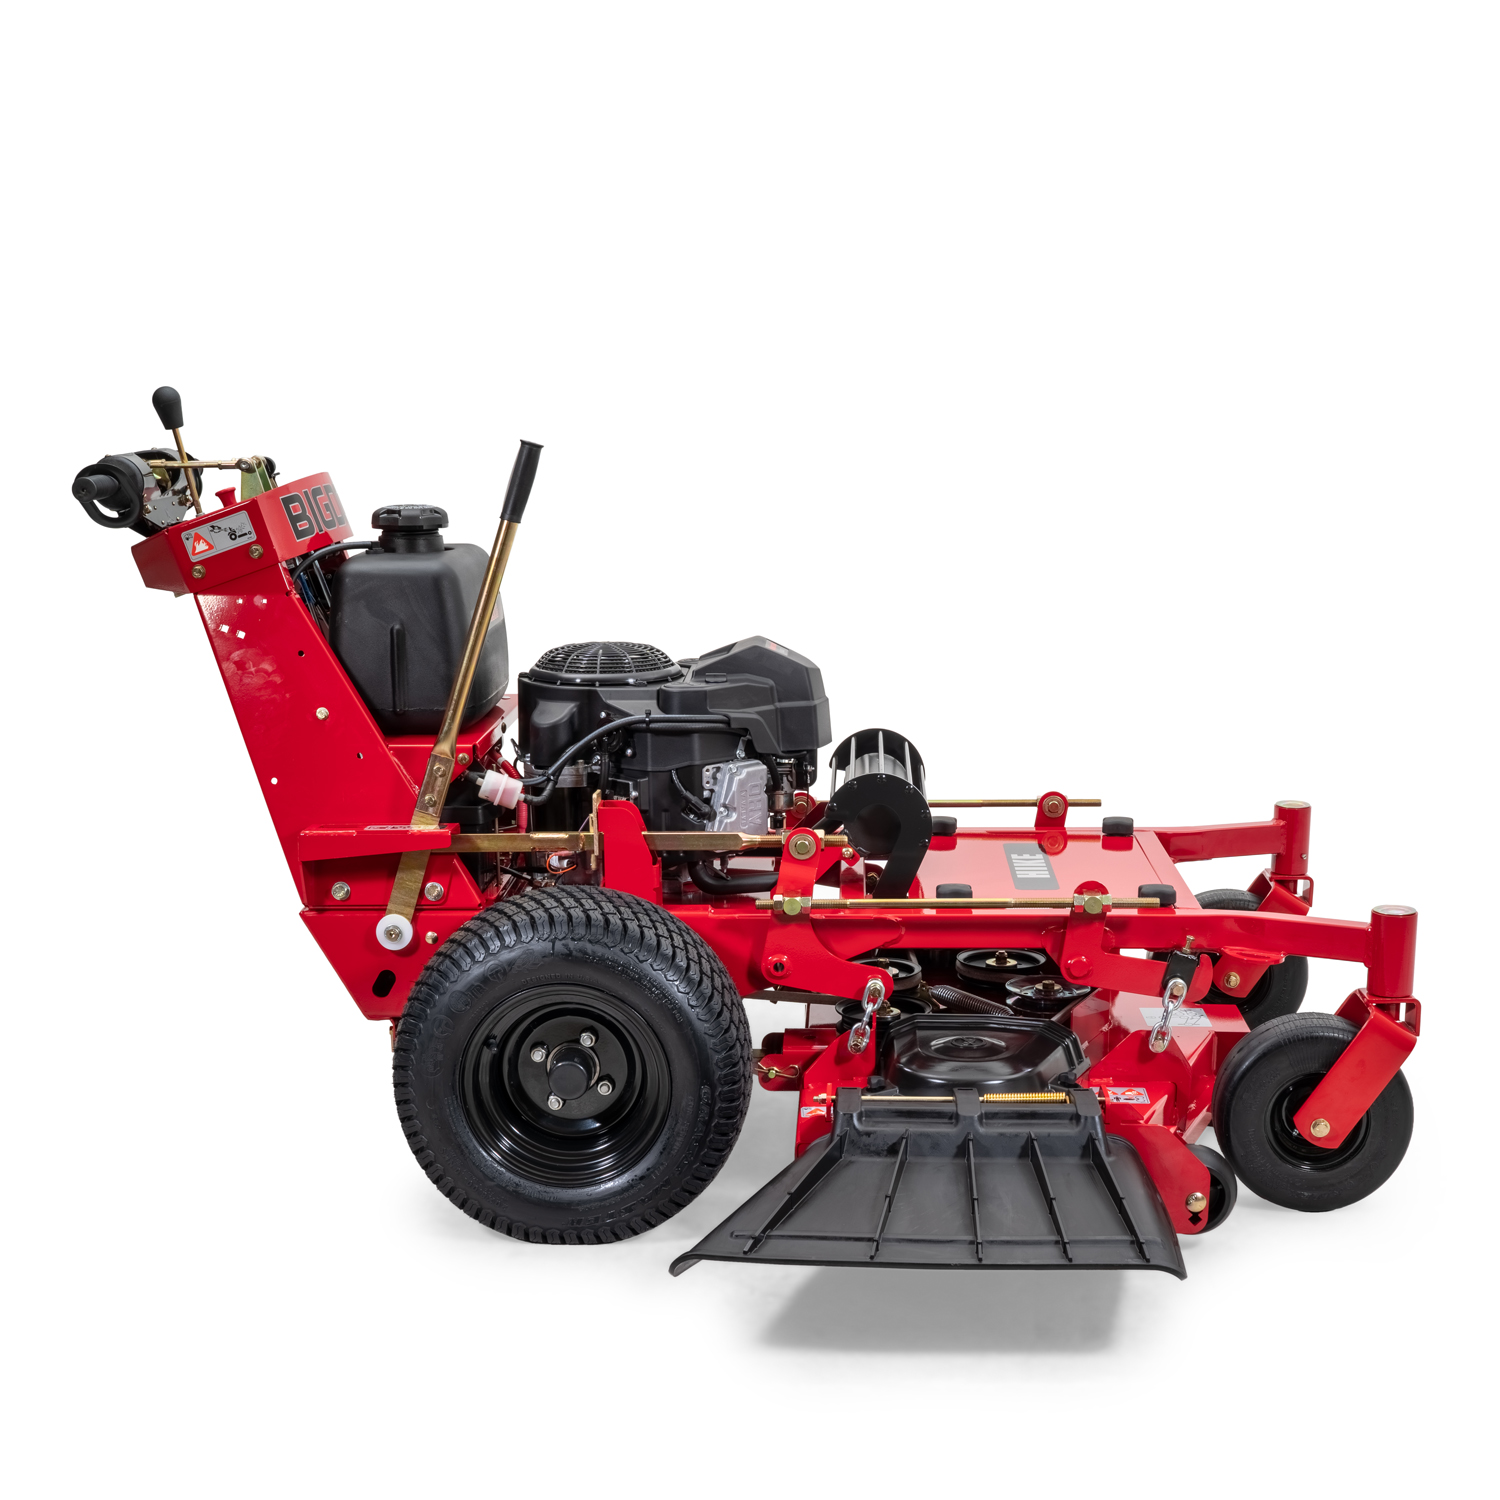 Image of the profile of a red walk-behind mower